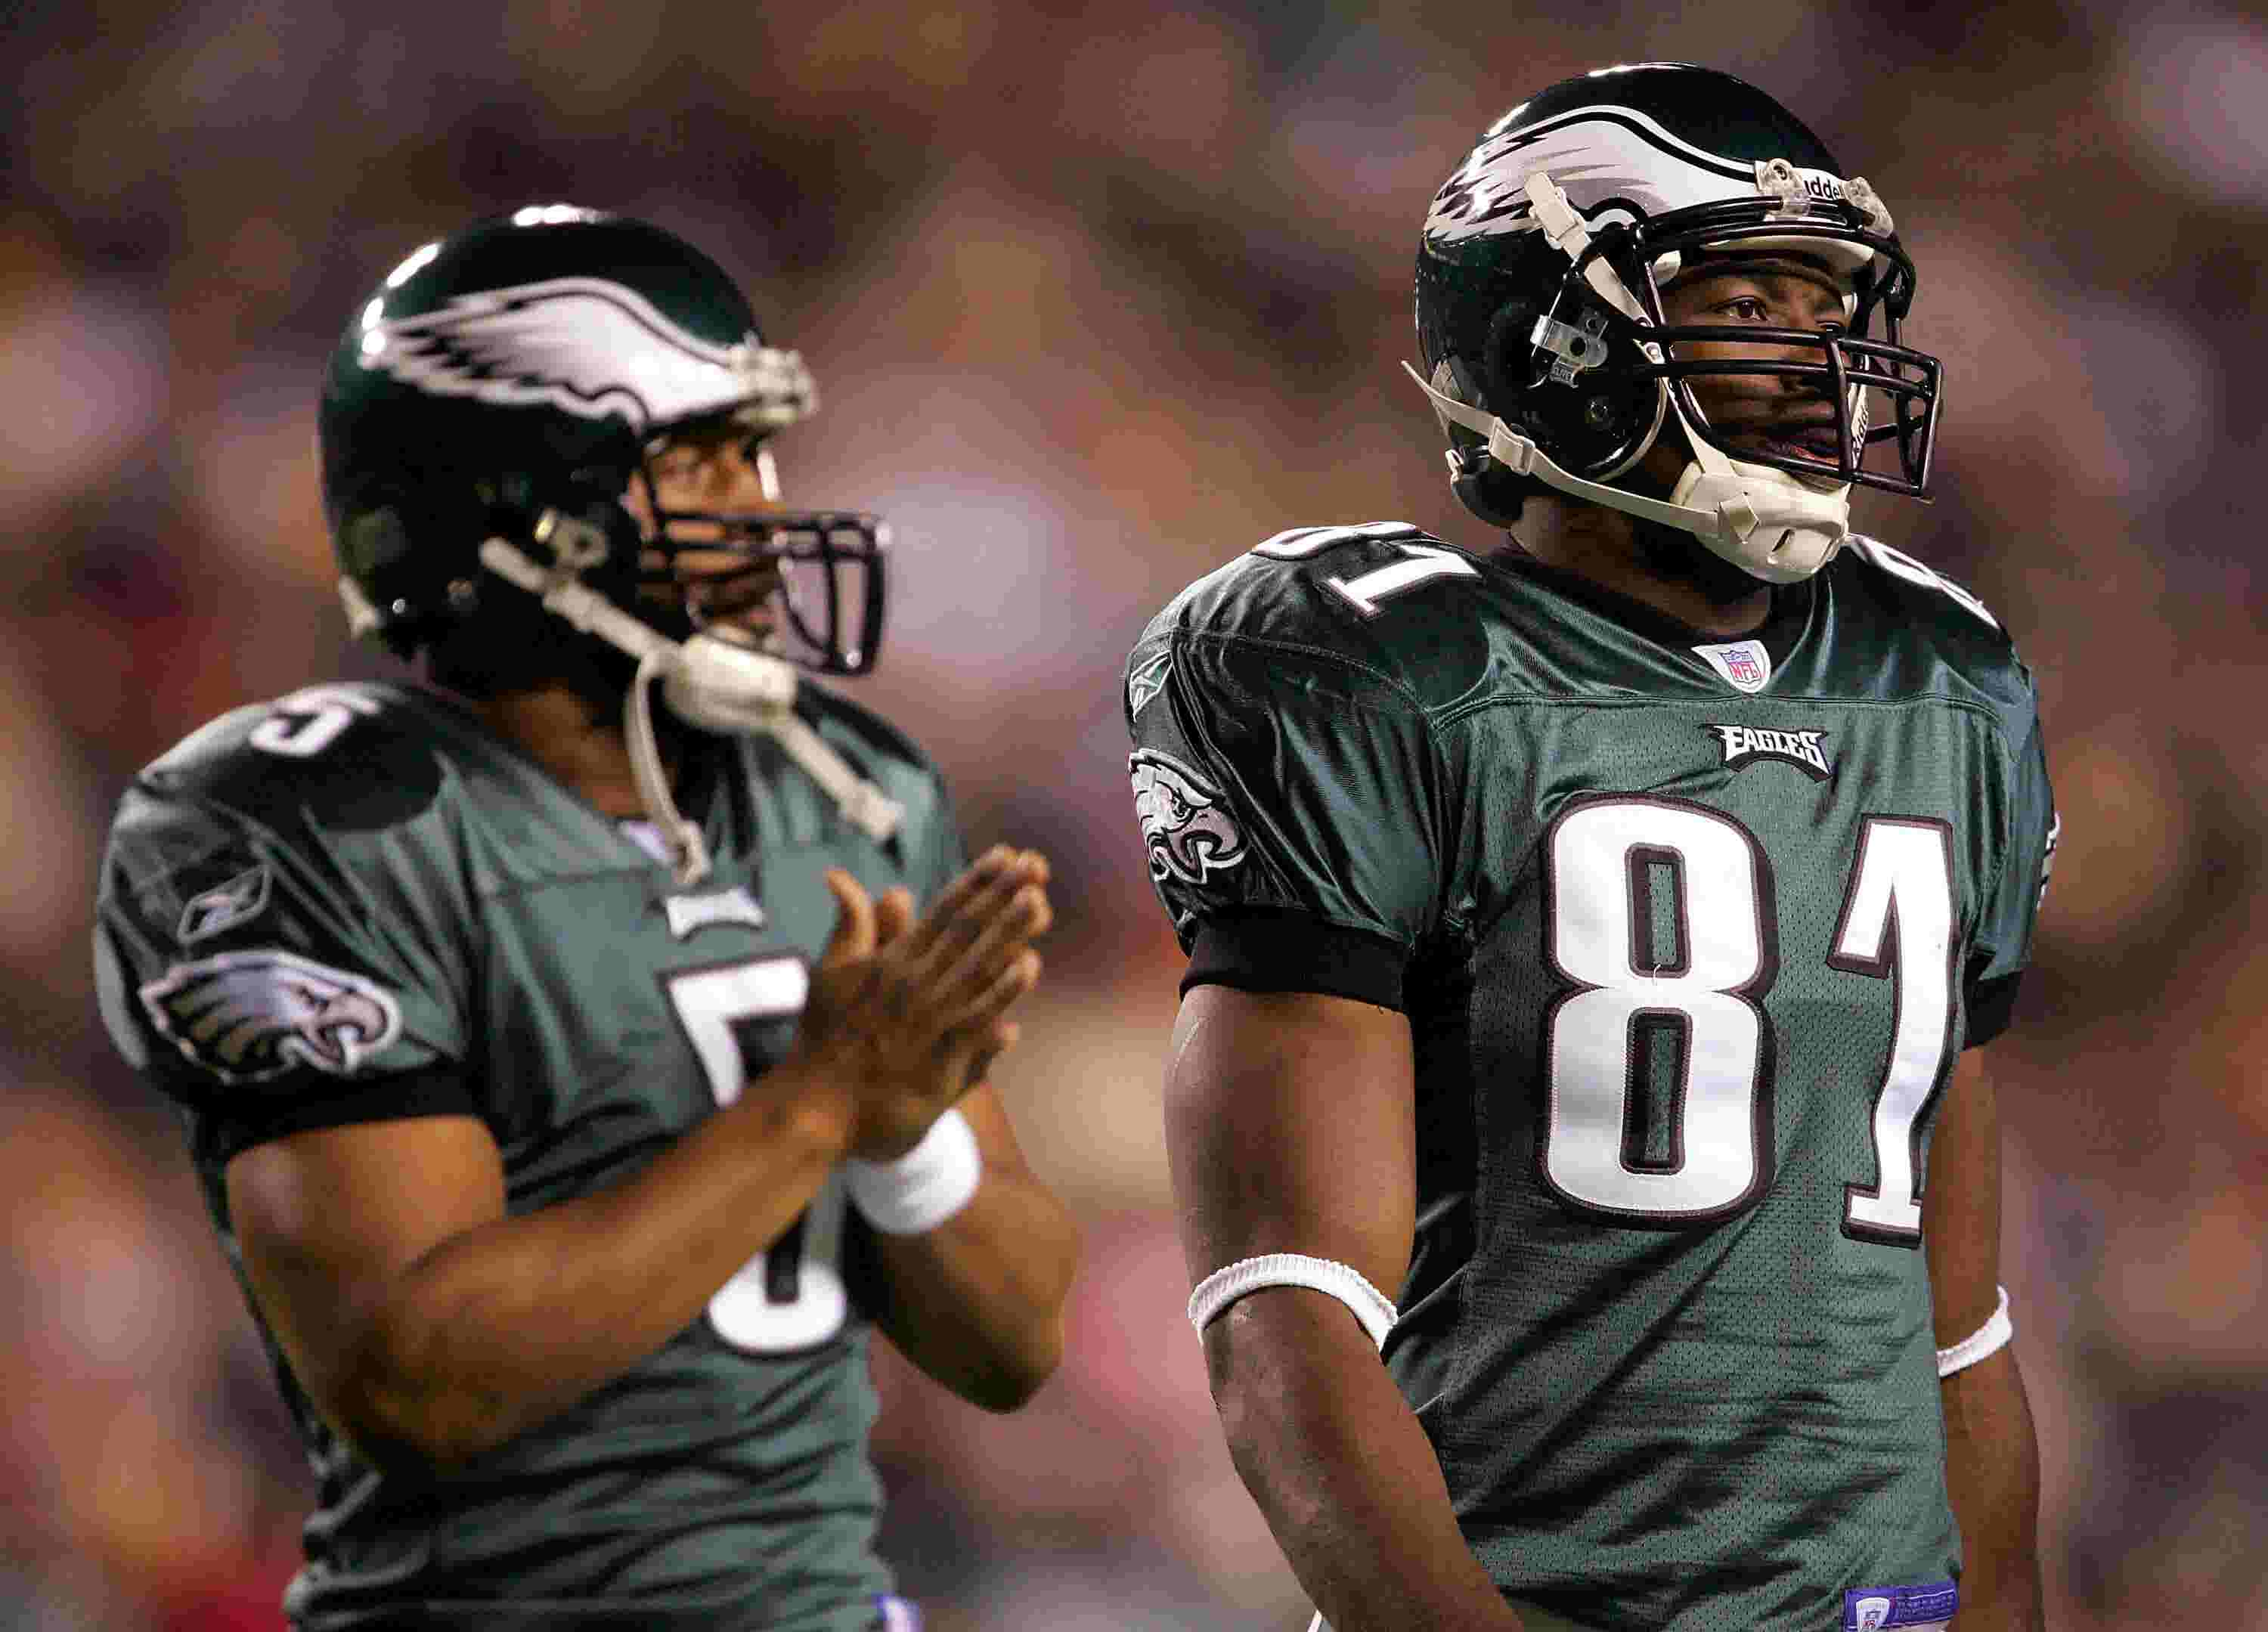 Donovan McNabb says Antonio Brown could be a 'recipe for disaster' for the Patriots